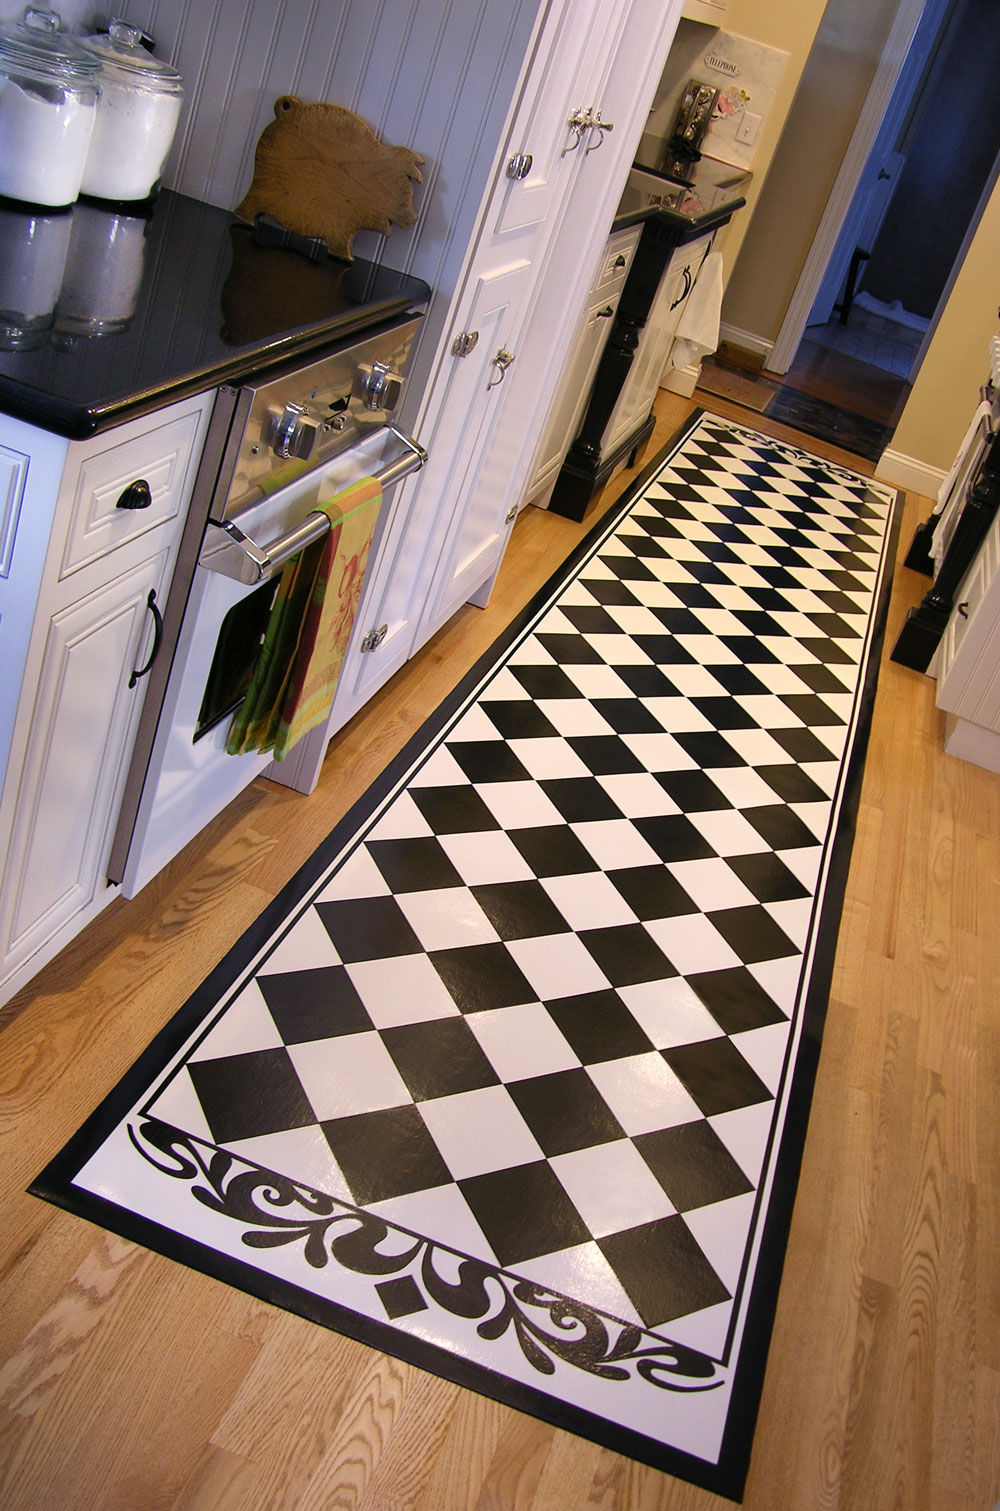 2 kitchen floor mat pic1 pic2 47